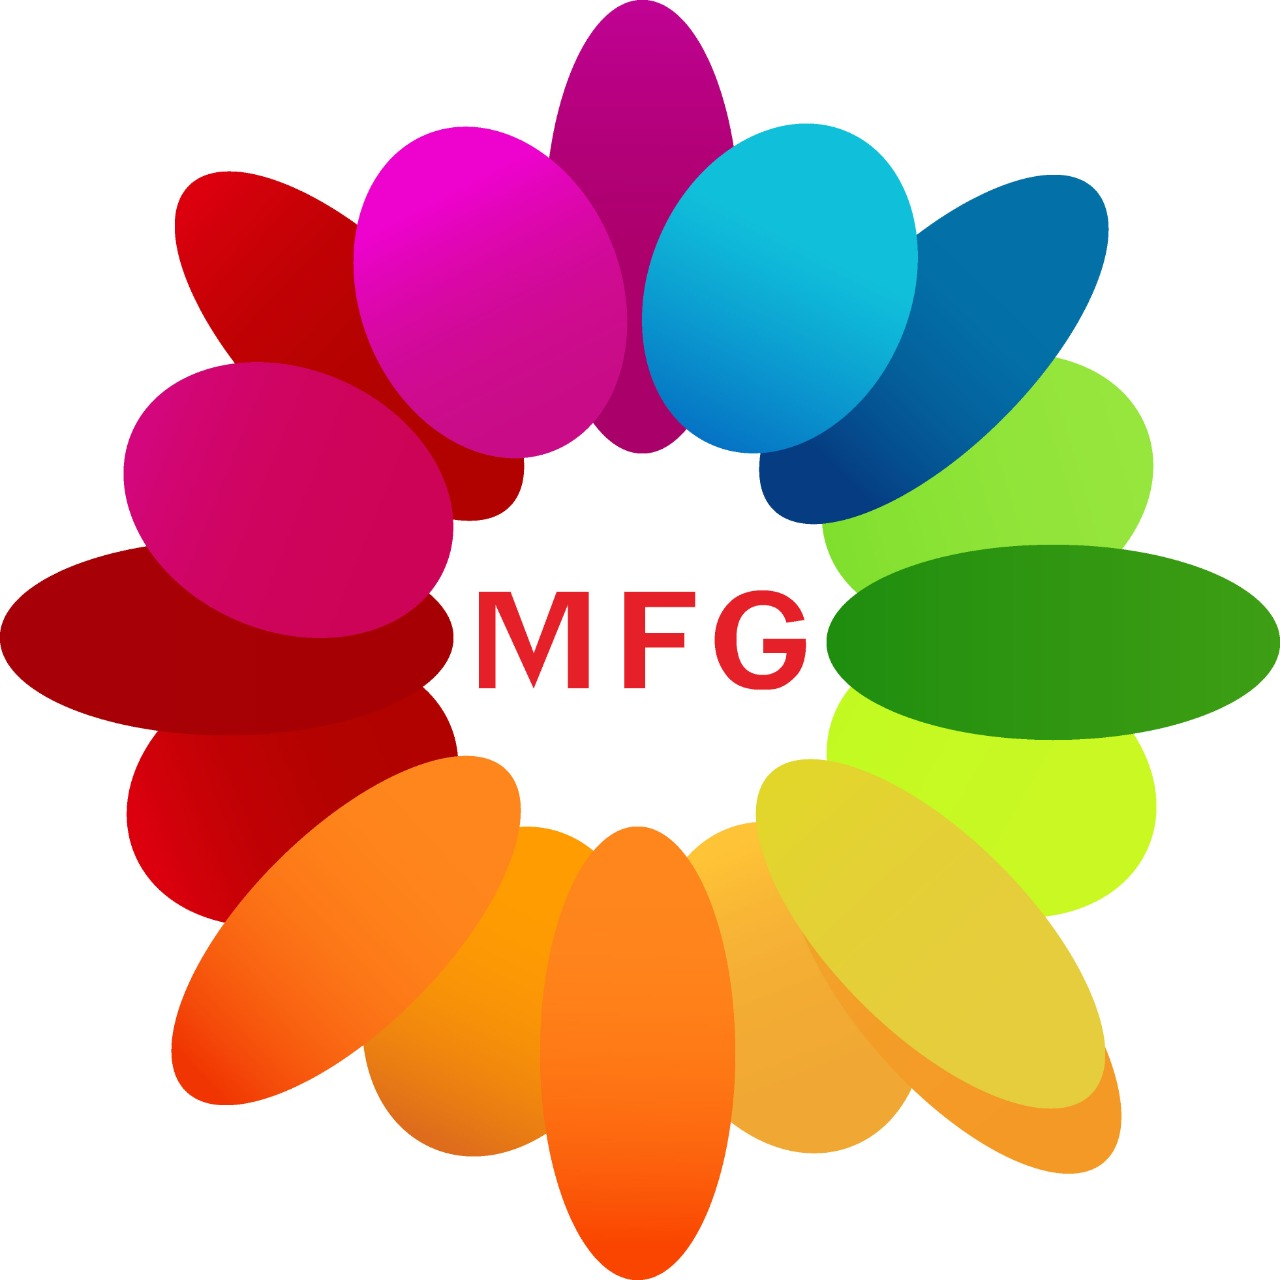 1 kg black forest cake with a cute 8 inches teddy bear with 3 pcs of balloons